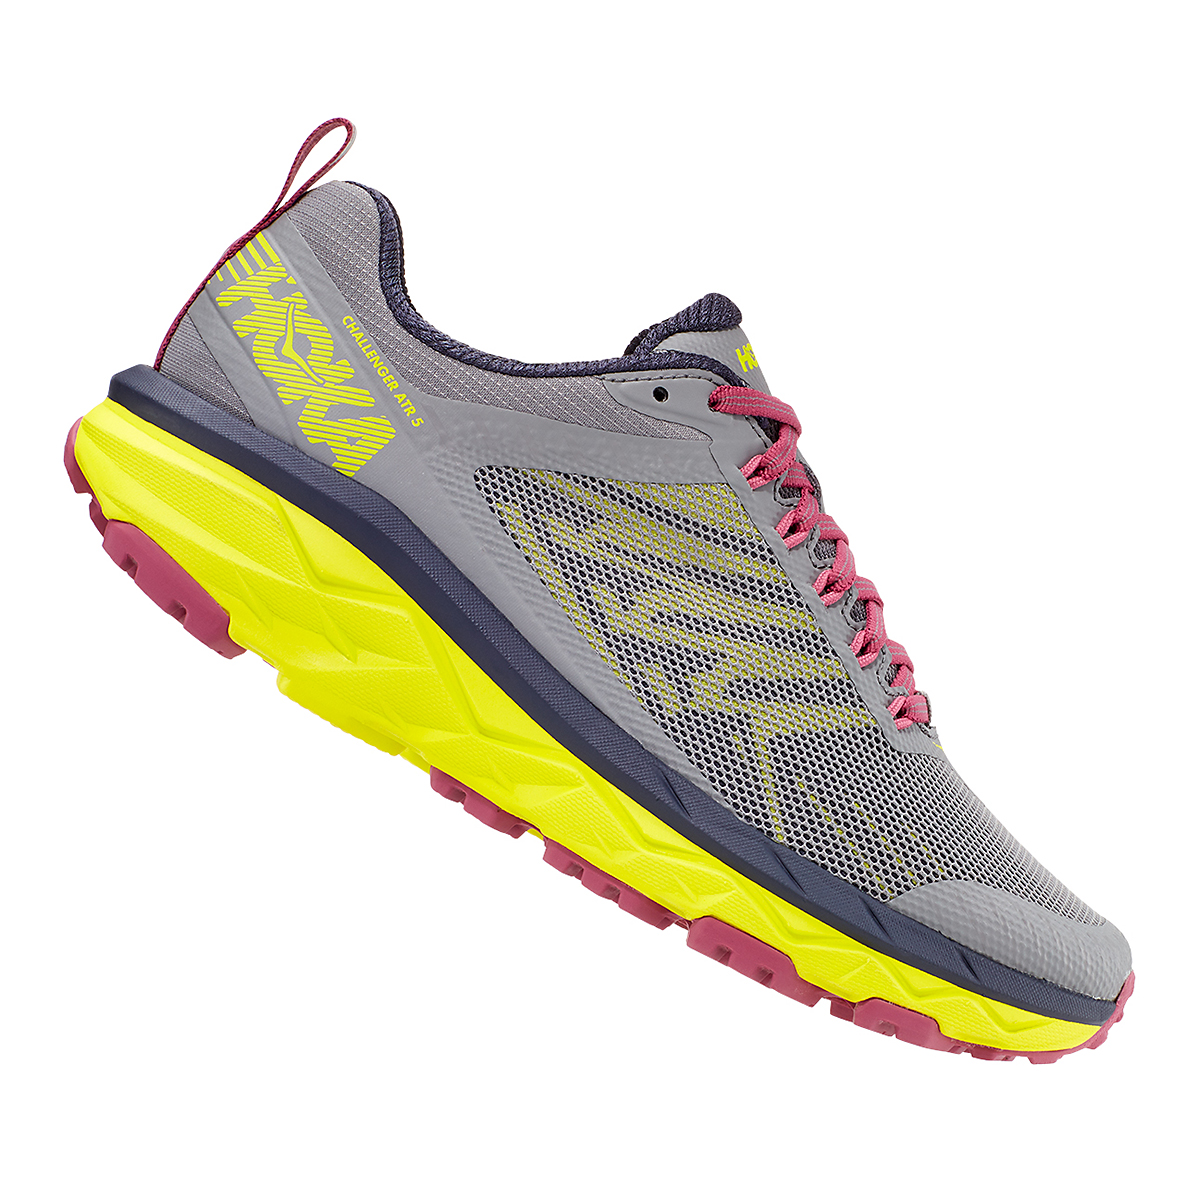 Women's Hoka One One Challenger ATR 5 Trail Running Shoe - Color: Frost Gray/Evening Primrose - Size: 5 - Width: Regular, Frost Gray/Evening Primrose, large, image 4